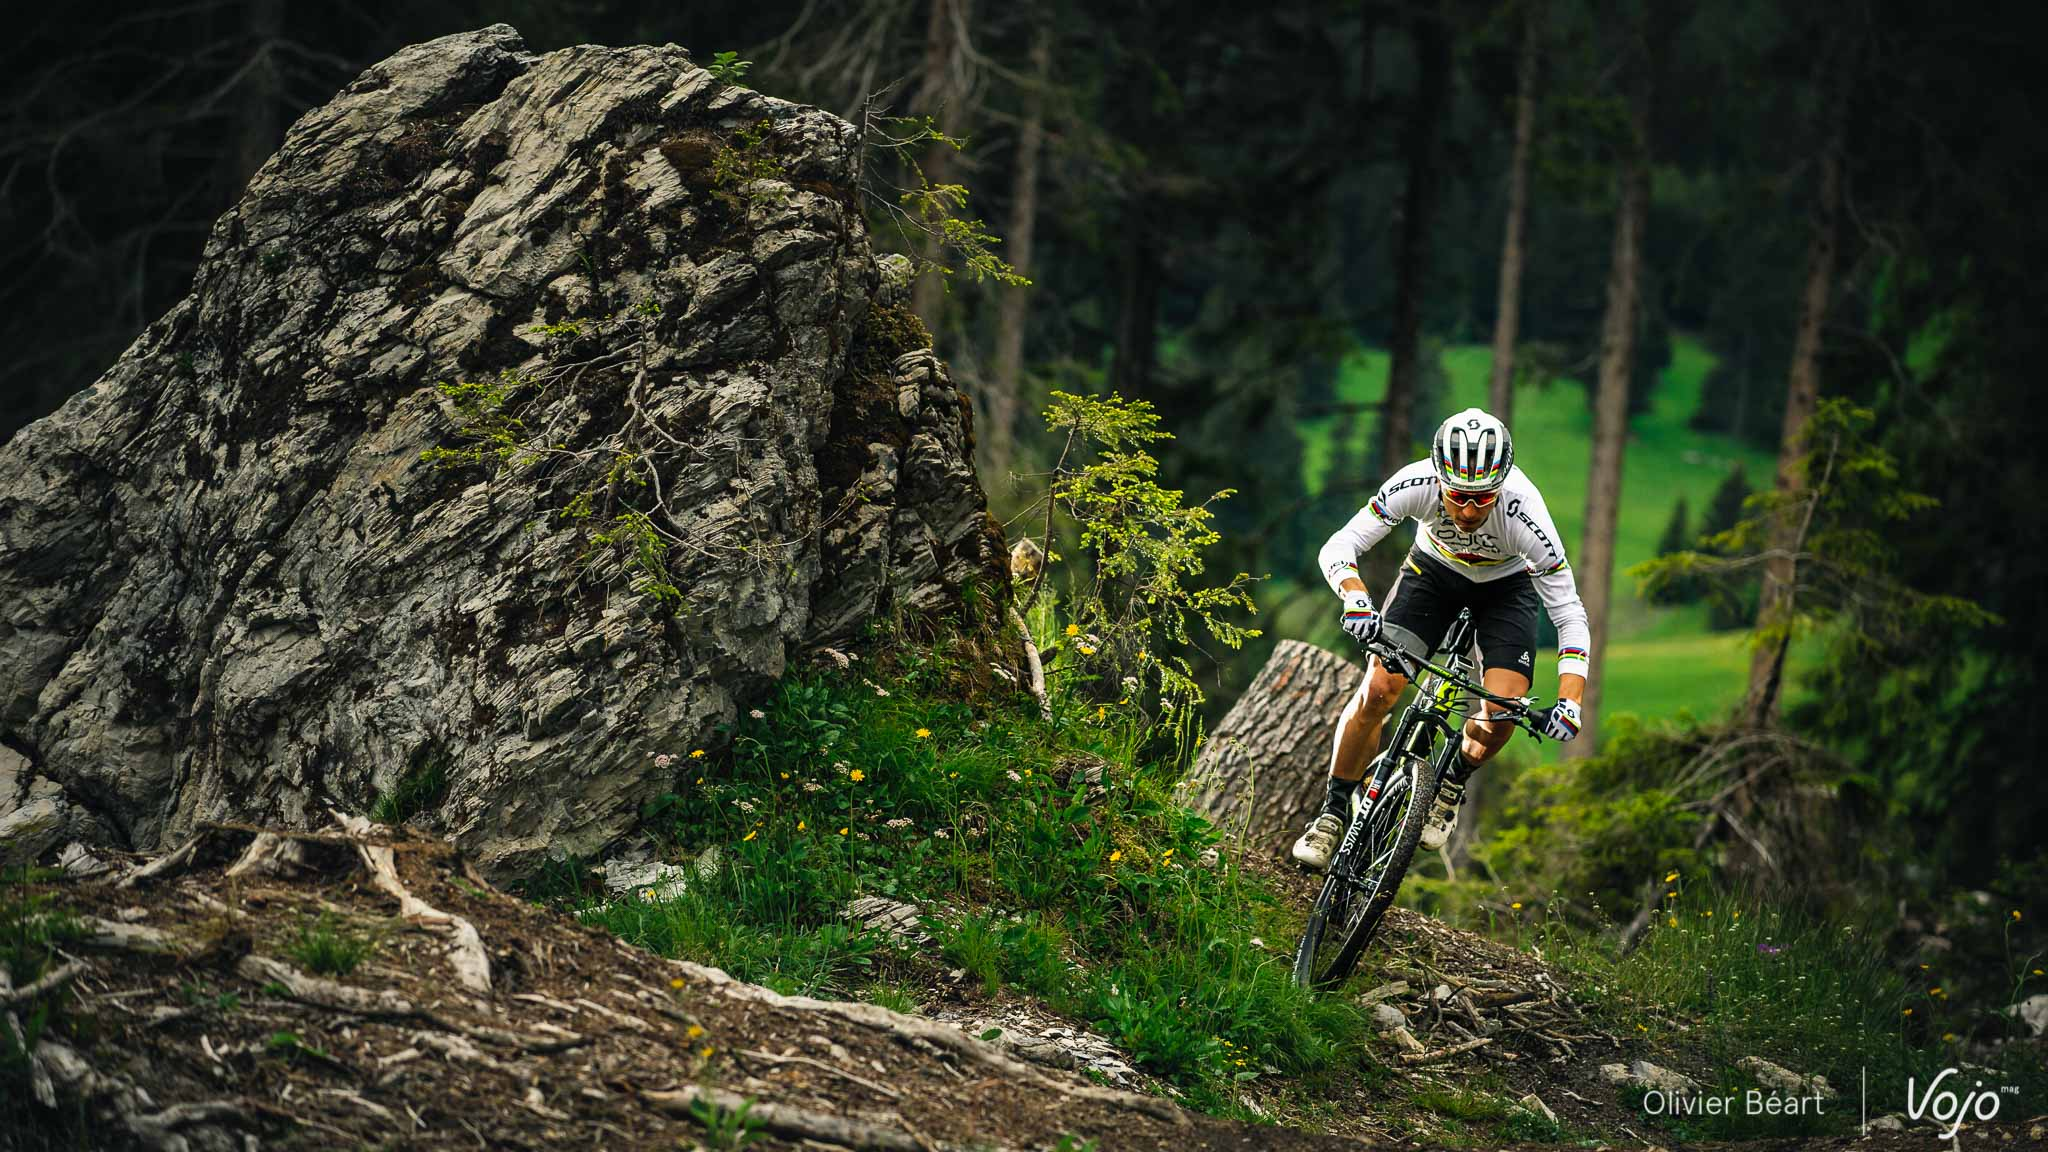 Nino_Schurter_Interview_Scott_Spark_Scale_Copyright_OBeart_VojoMag-7